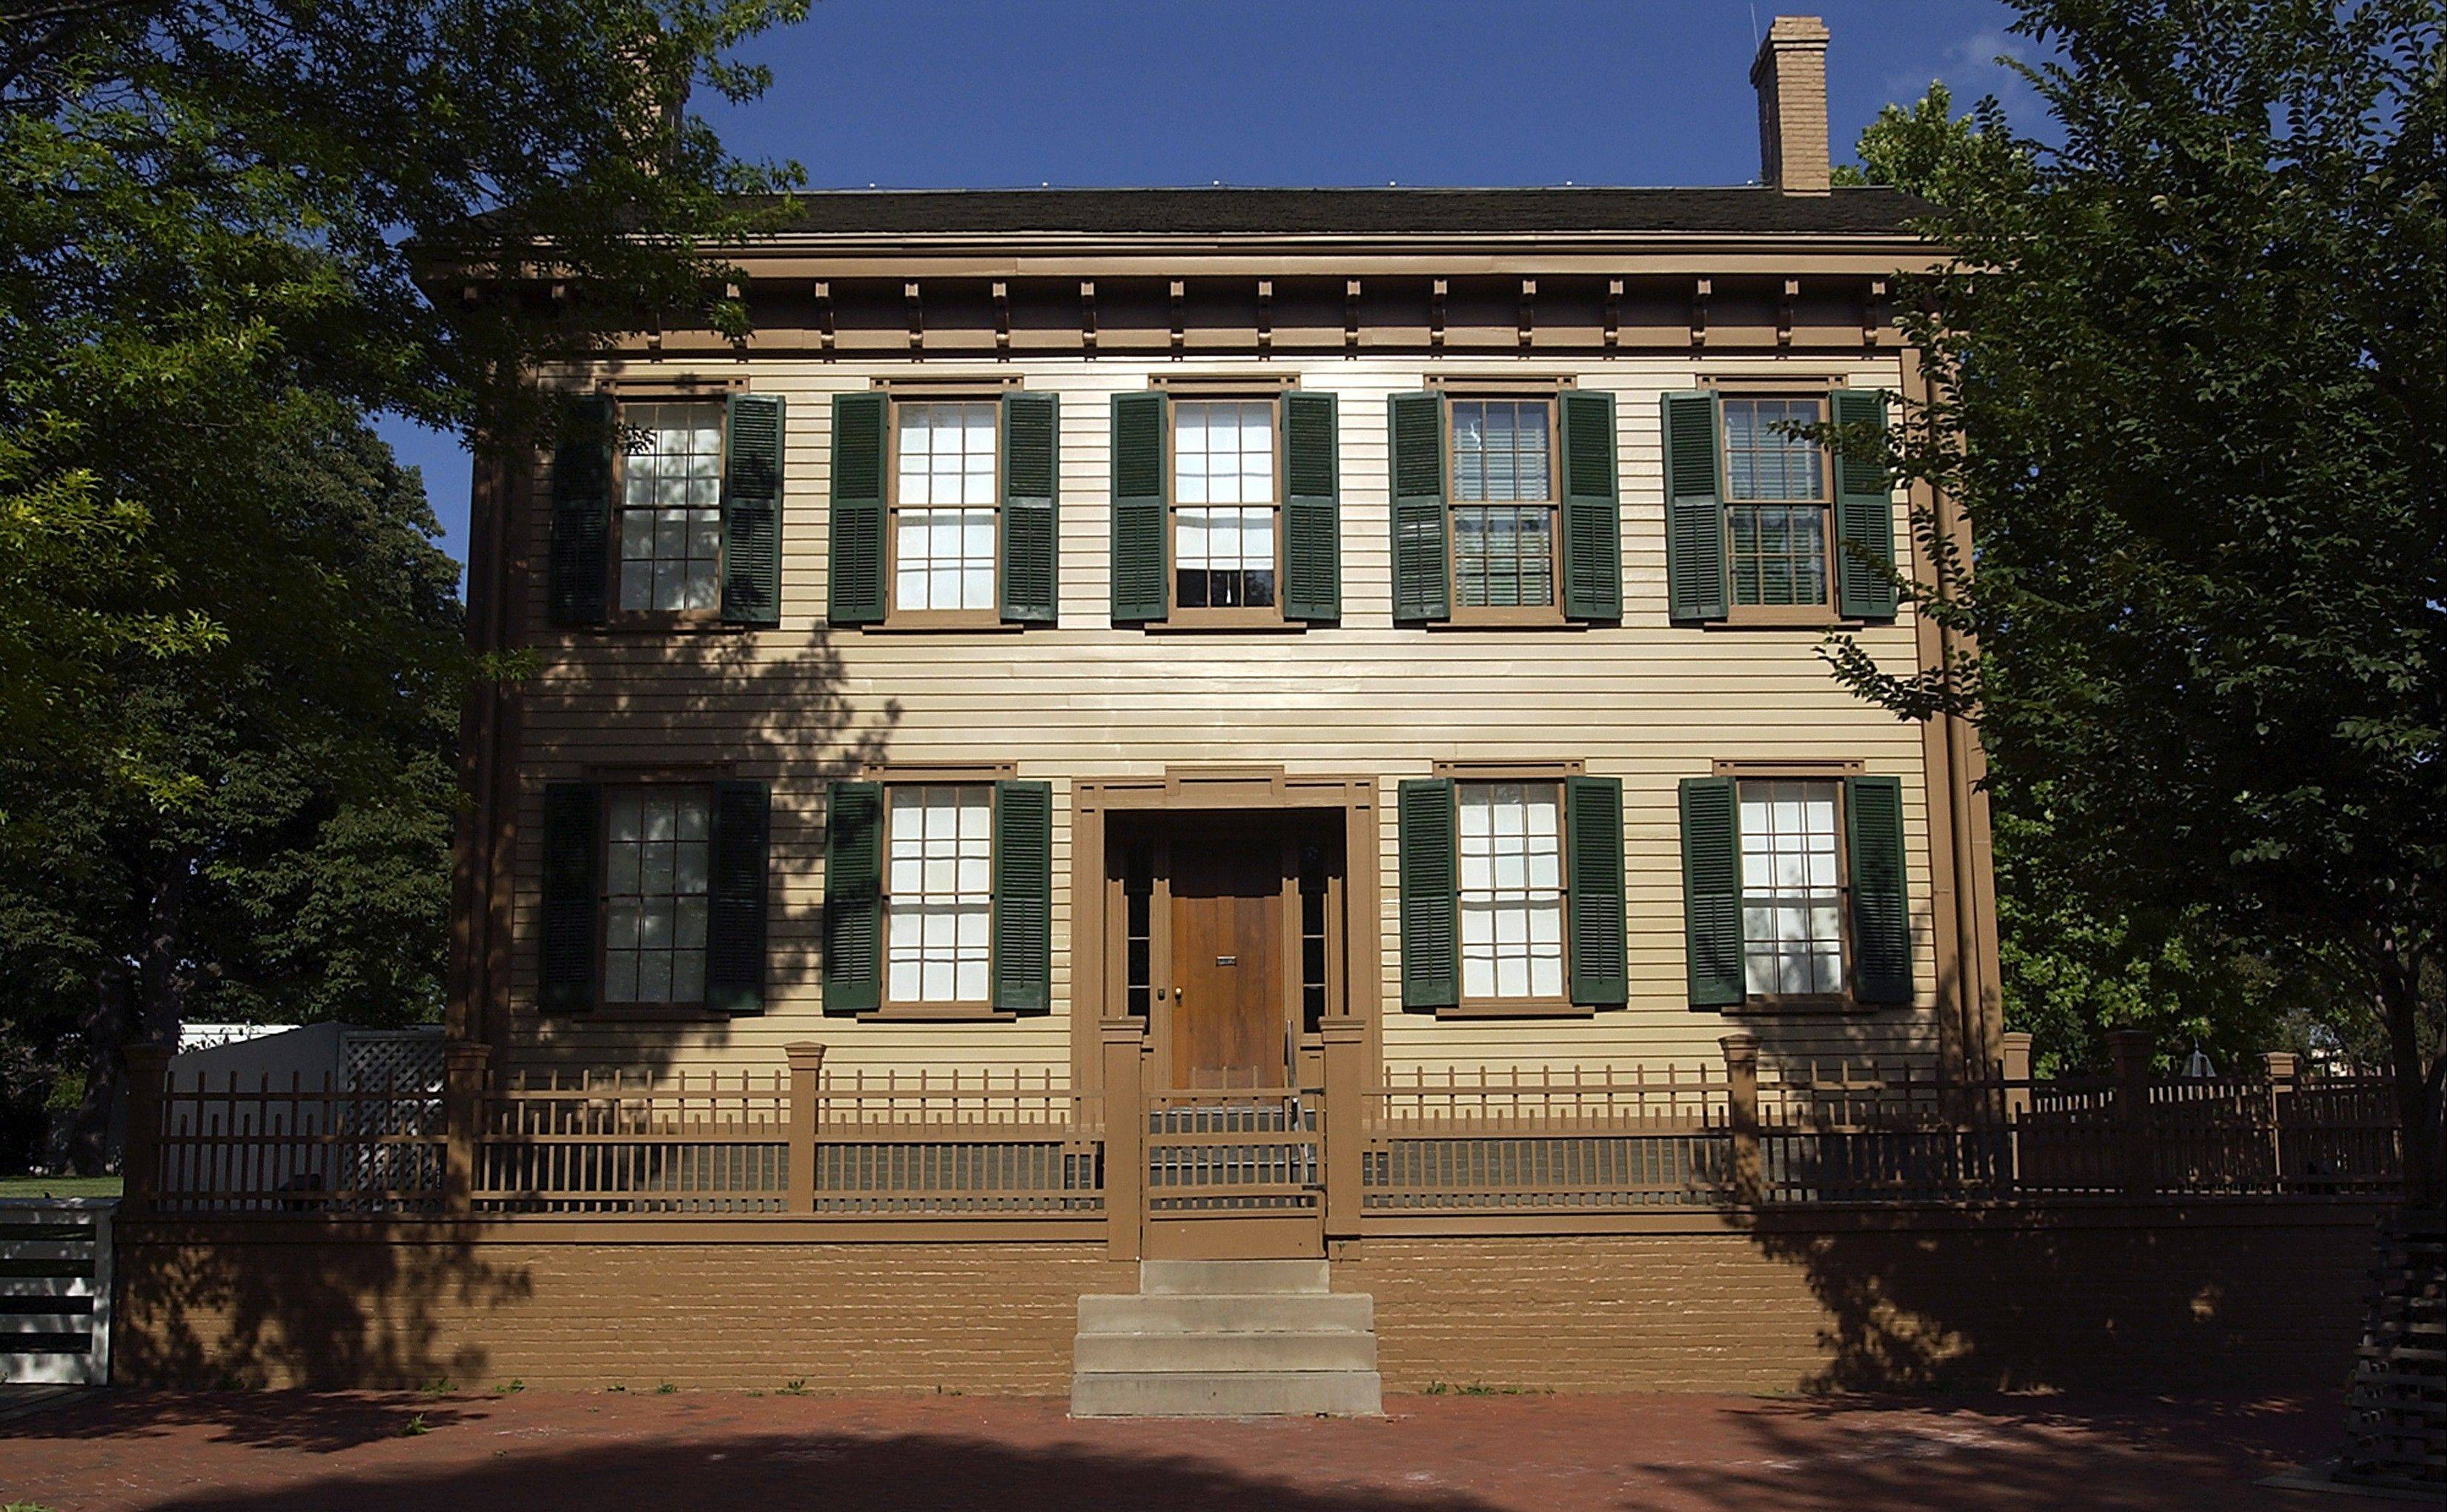 Admission to the Lincoln Home National Historic Site in Springfield is free but tickets should be picked up early in the visitor's center.